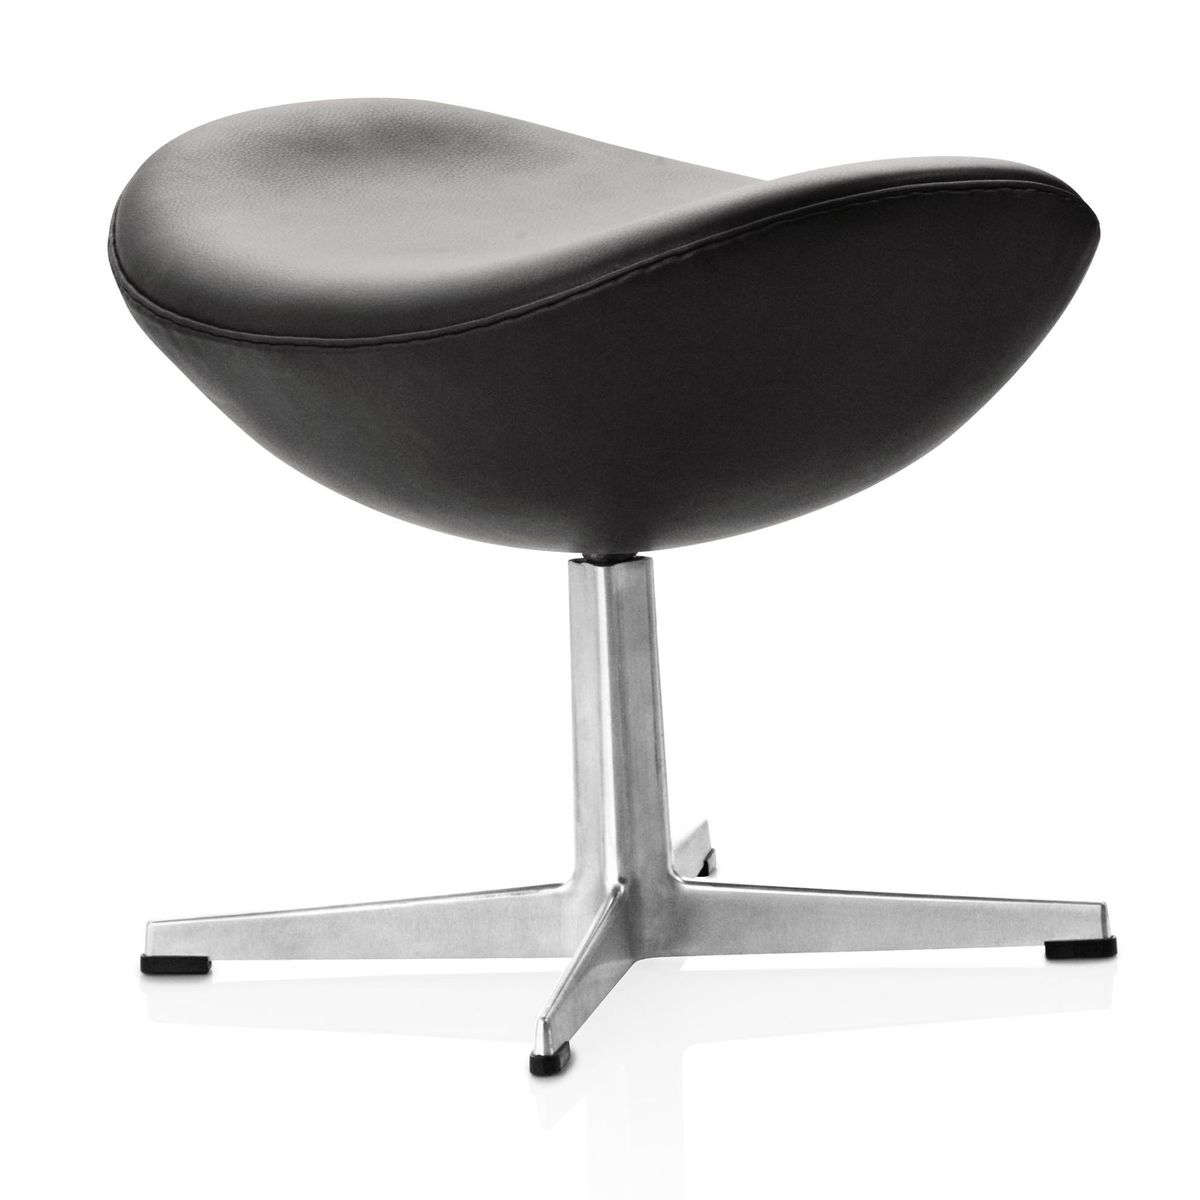 egg chair das ei fu hocker leder fritz hansen. Black Bedroom Furniture Sets. Home Design Ideas